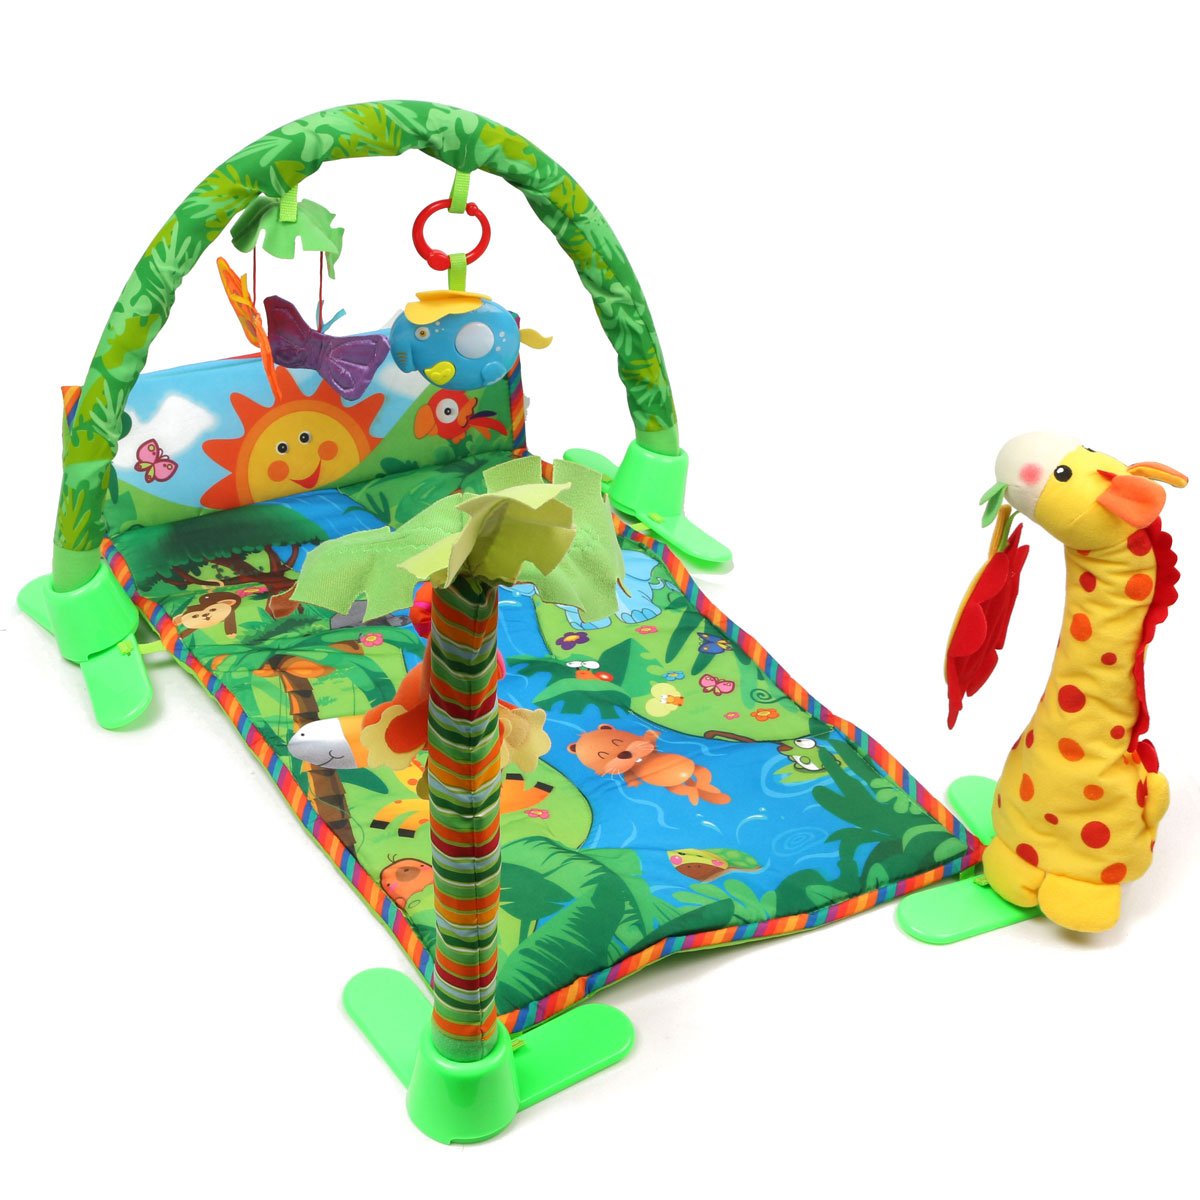 BabyGym™ Infant Baby Activity Gym Floor Play Mat Toy